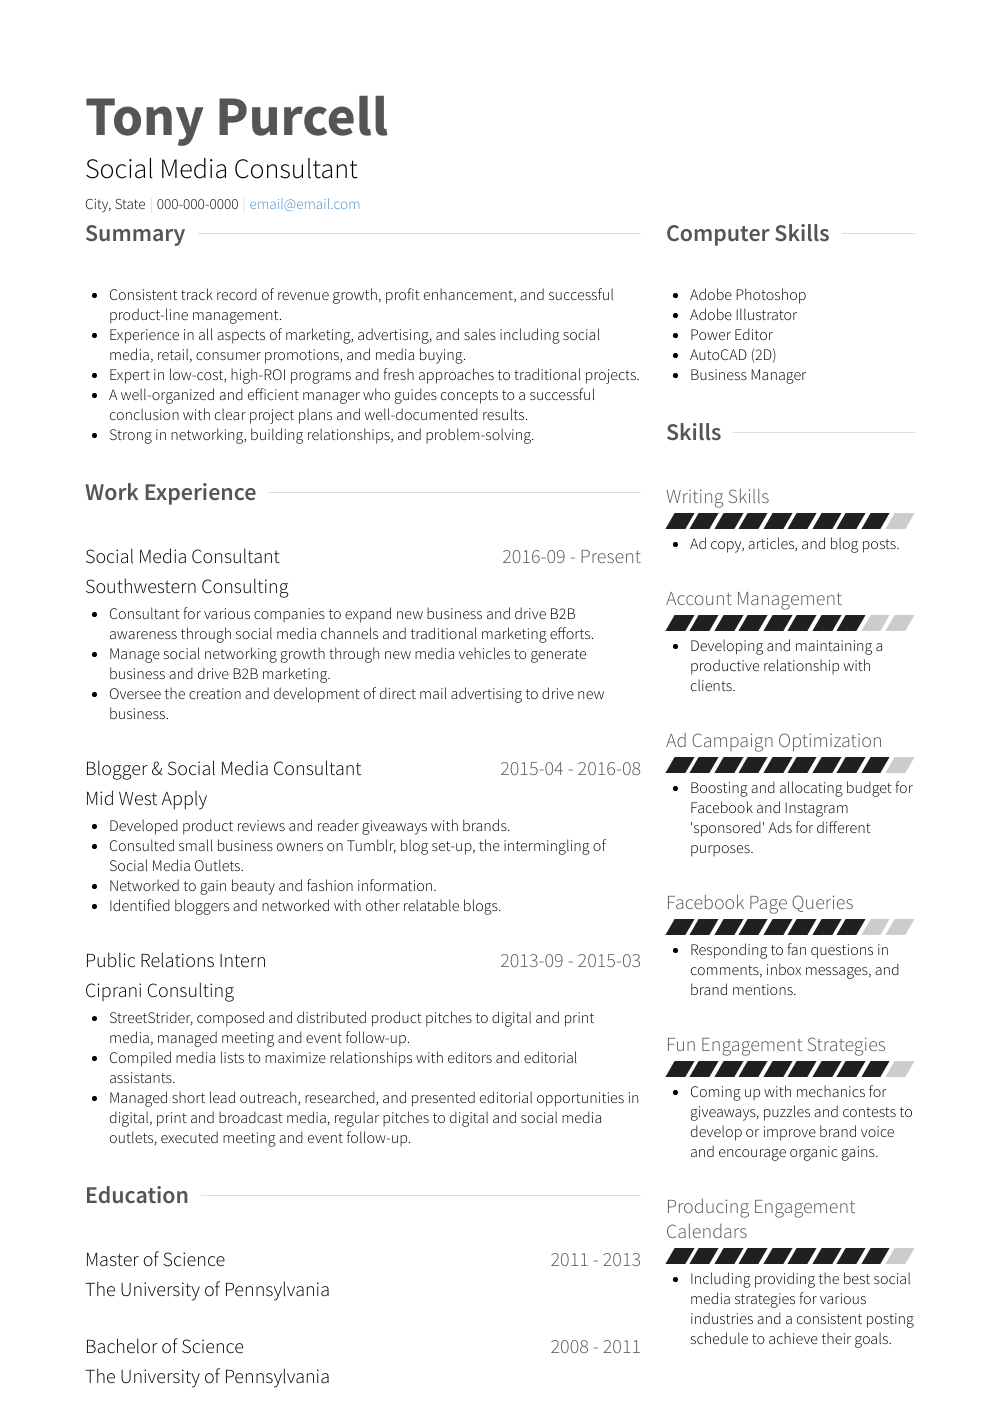 social media consultant resume samples   1 resource for templates  u0026 skills